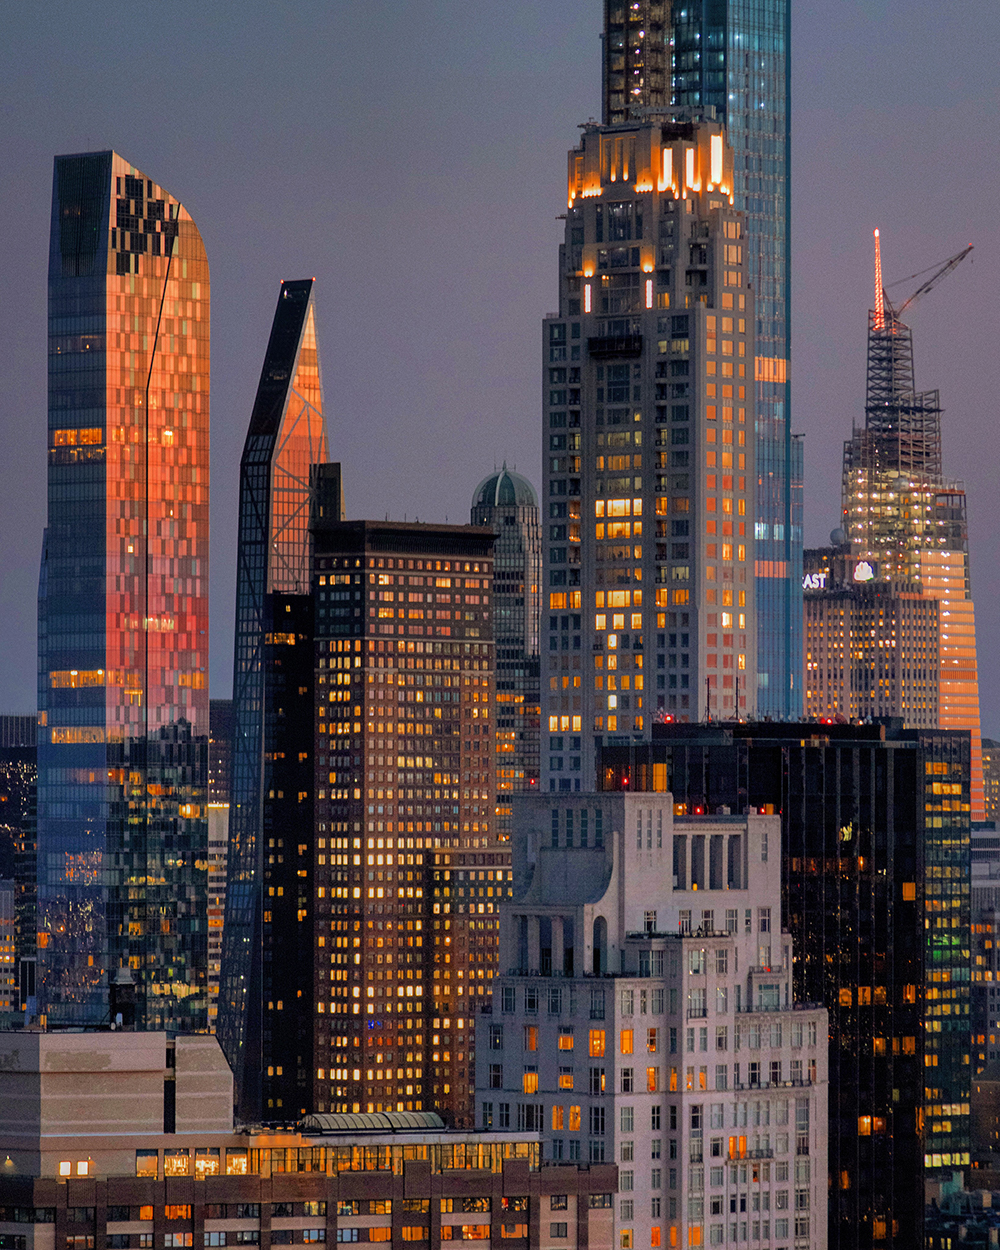 Billionaires' Row near dusk. Photo by Michael Young